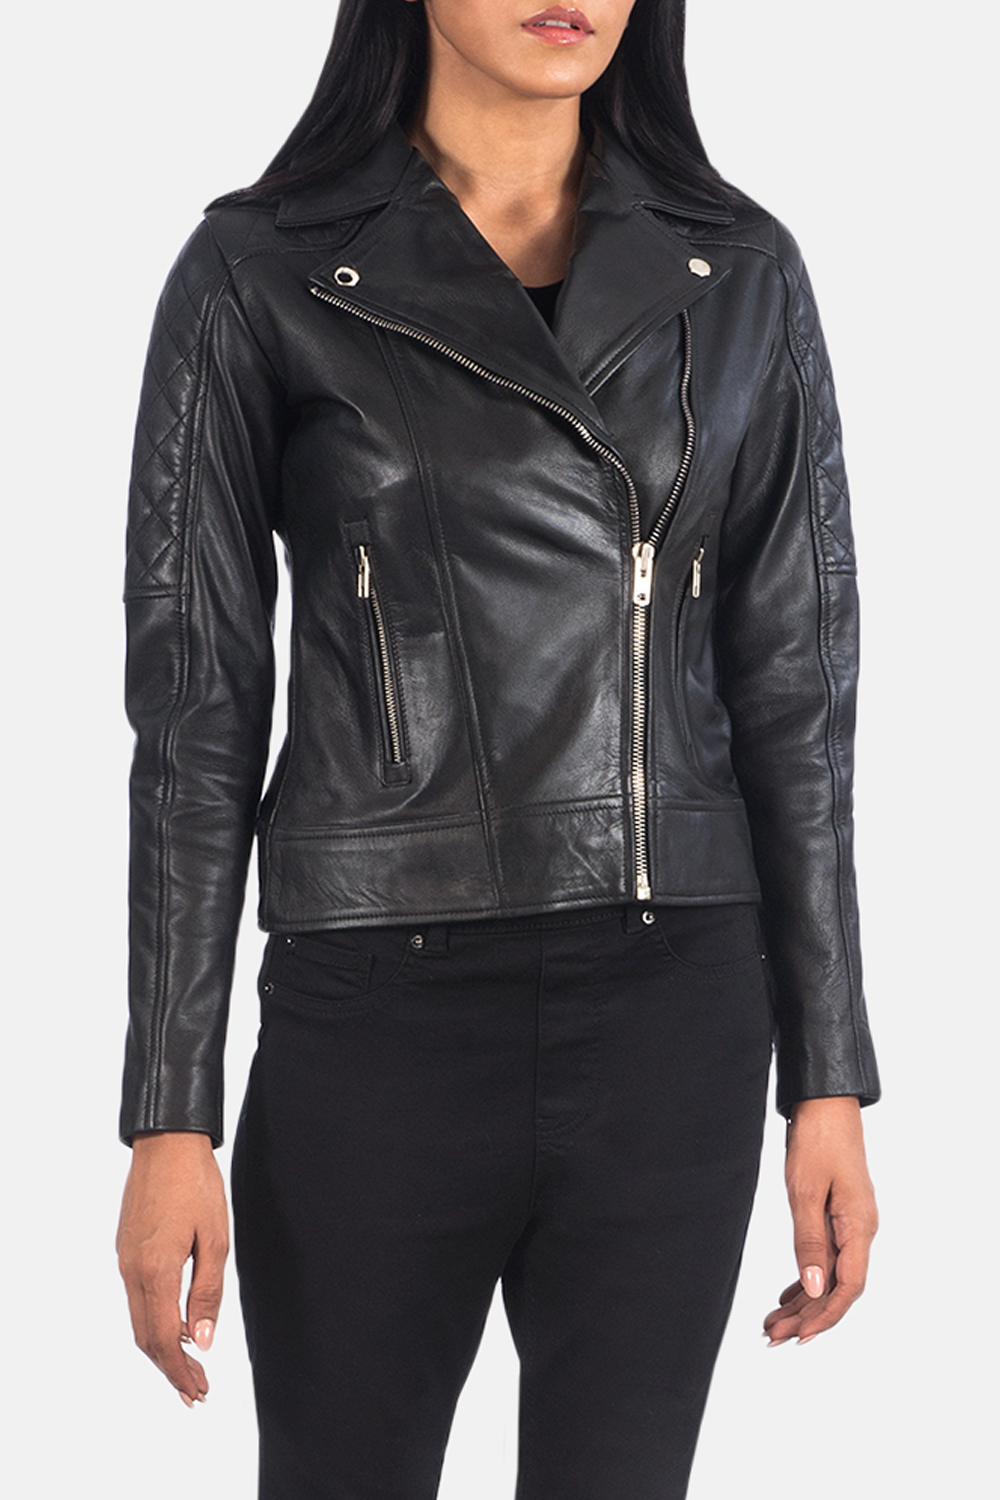 a lookbook snapshot of a woman wearing leather jacket